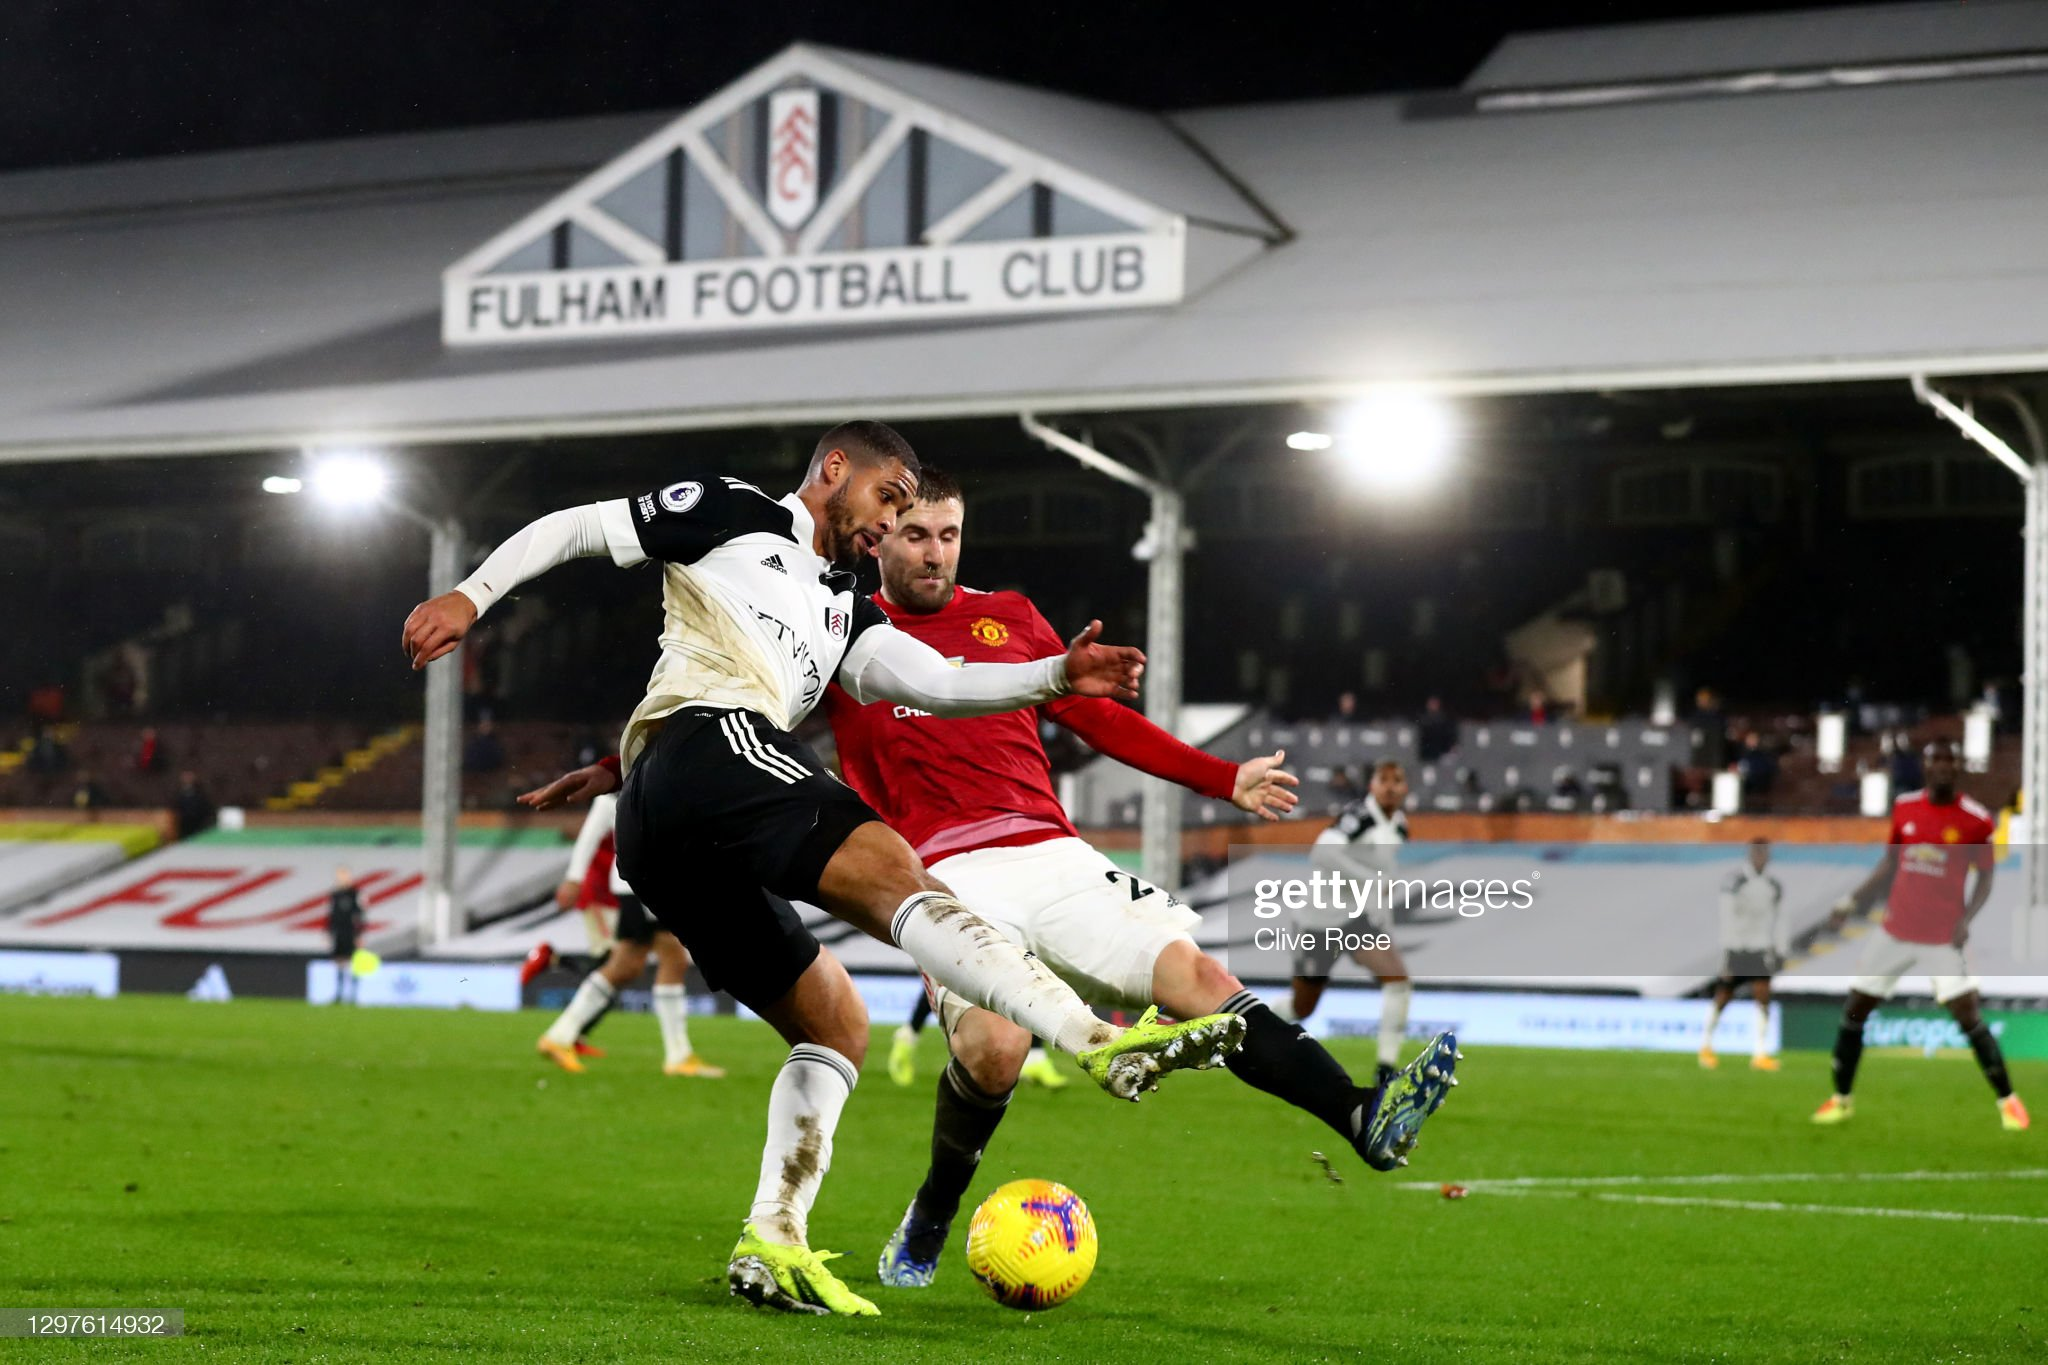 Manchester United vs Fulham preview, prediction and odds